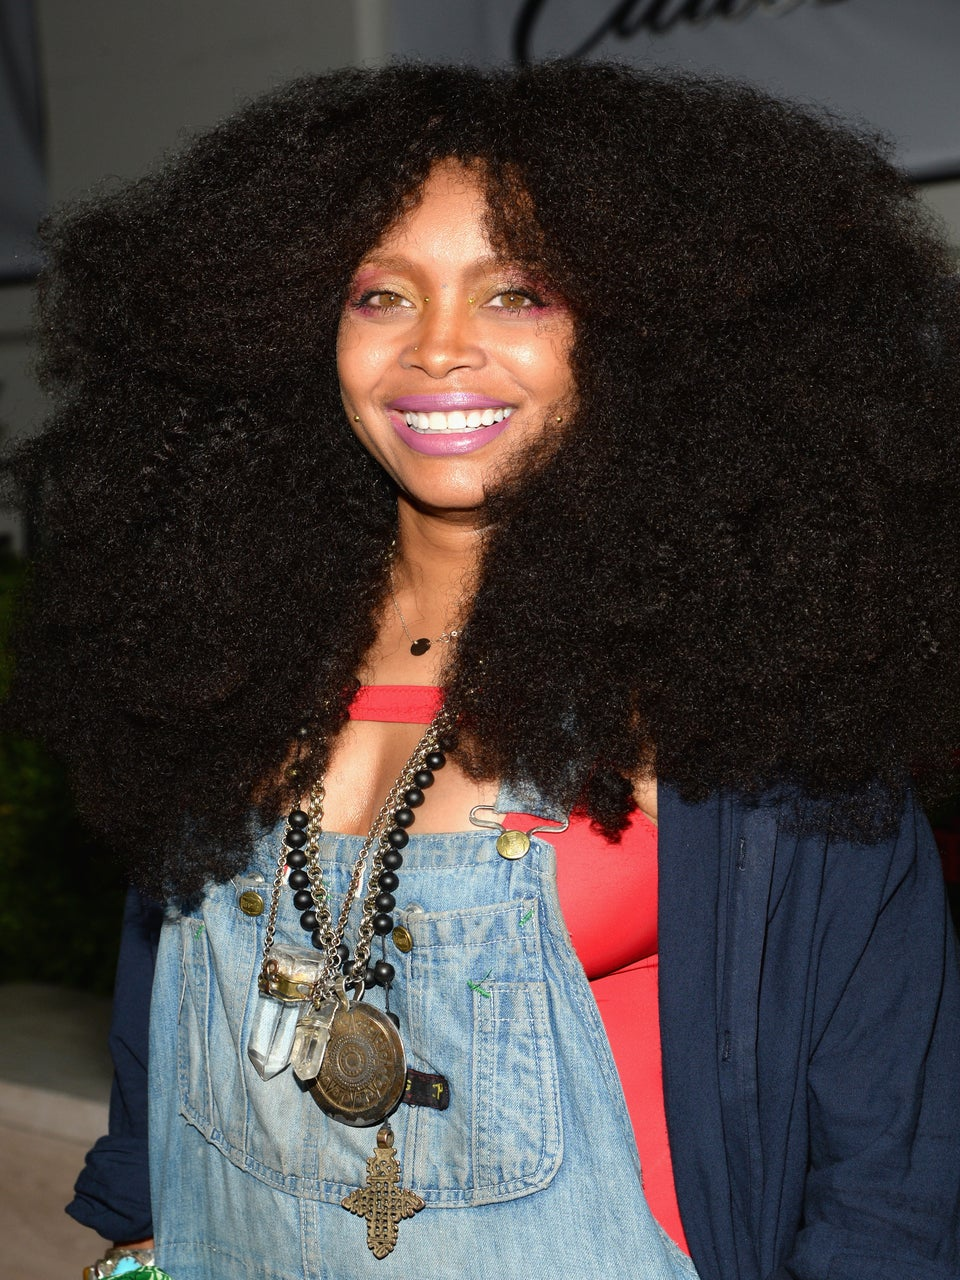 This Photo Of 19-Year-Old Erykah Badu Proves The Singer Has Always Been Flawless